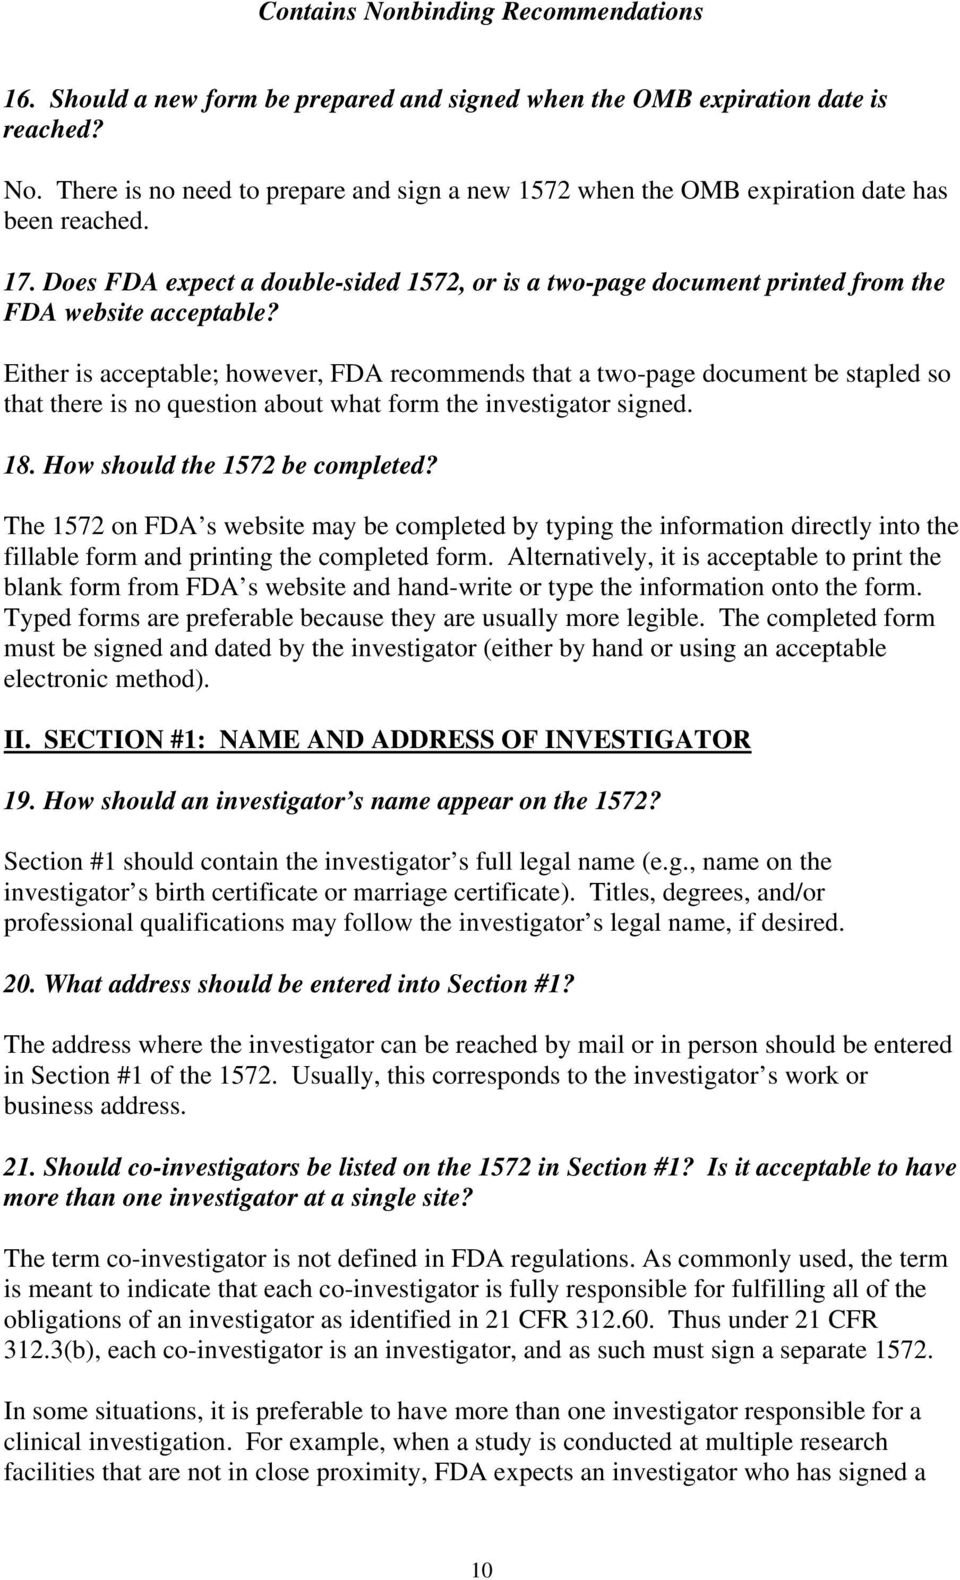 Either is acceptable; however, FDA recommends that a two-page document be stapled so that there is no question about what form the investigator signed. 18. How should the 1572 be completed?